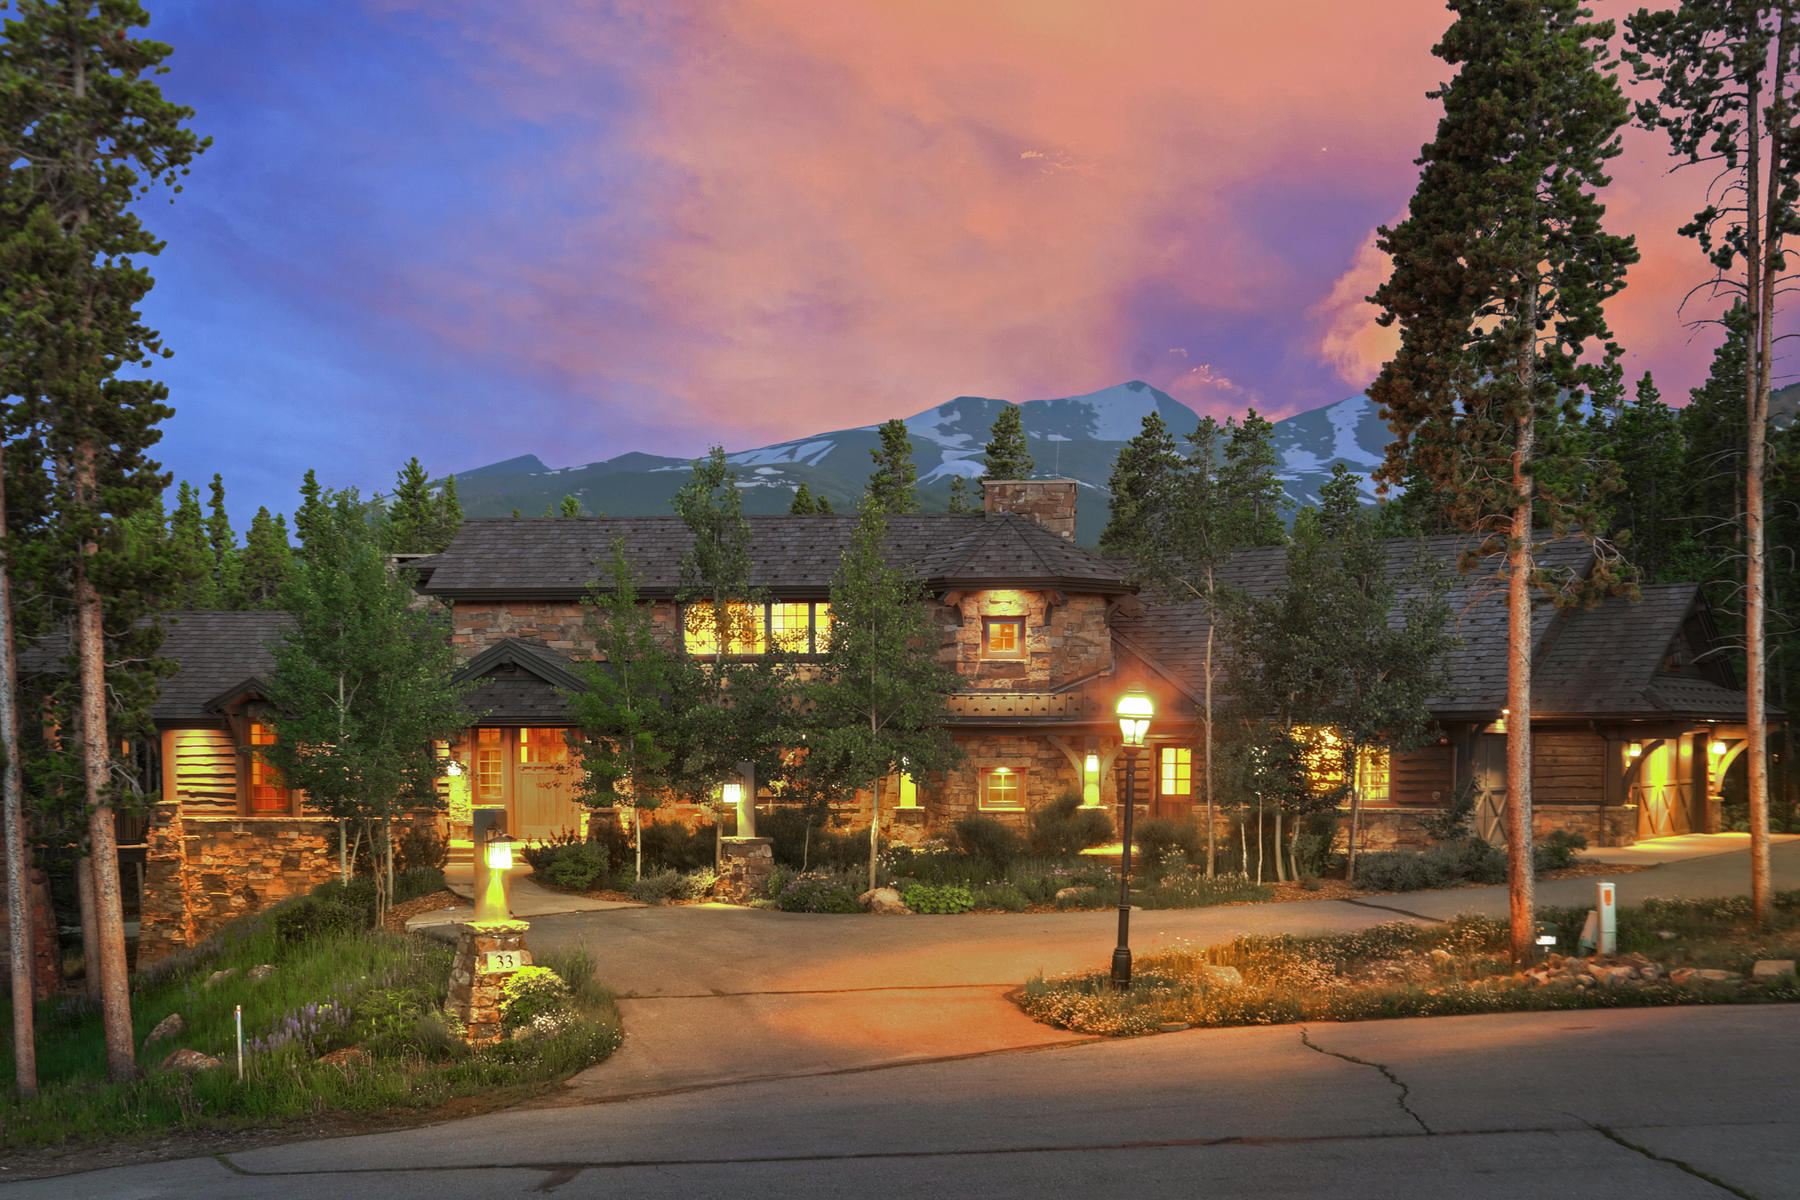 Single Family Homes for Active at A One of a Kind Breckenridge Estate 33 Iron Mask Road Breckenridge, Colorado 80424 United States